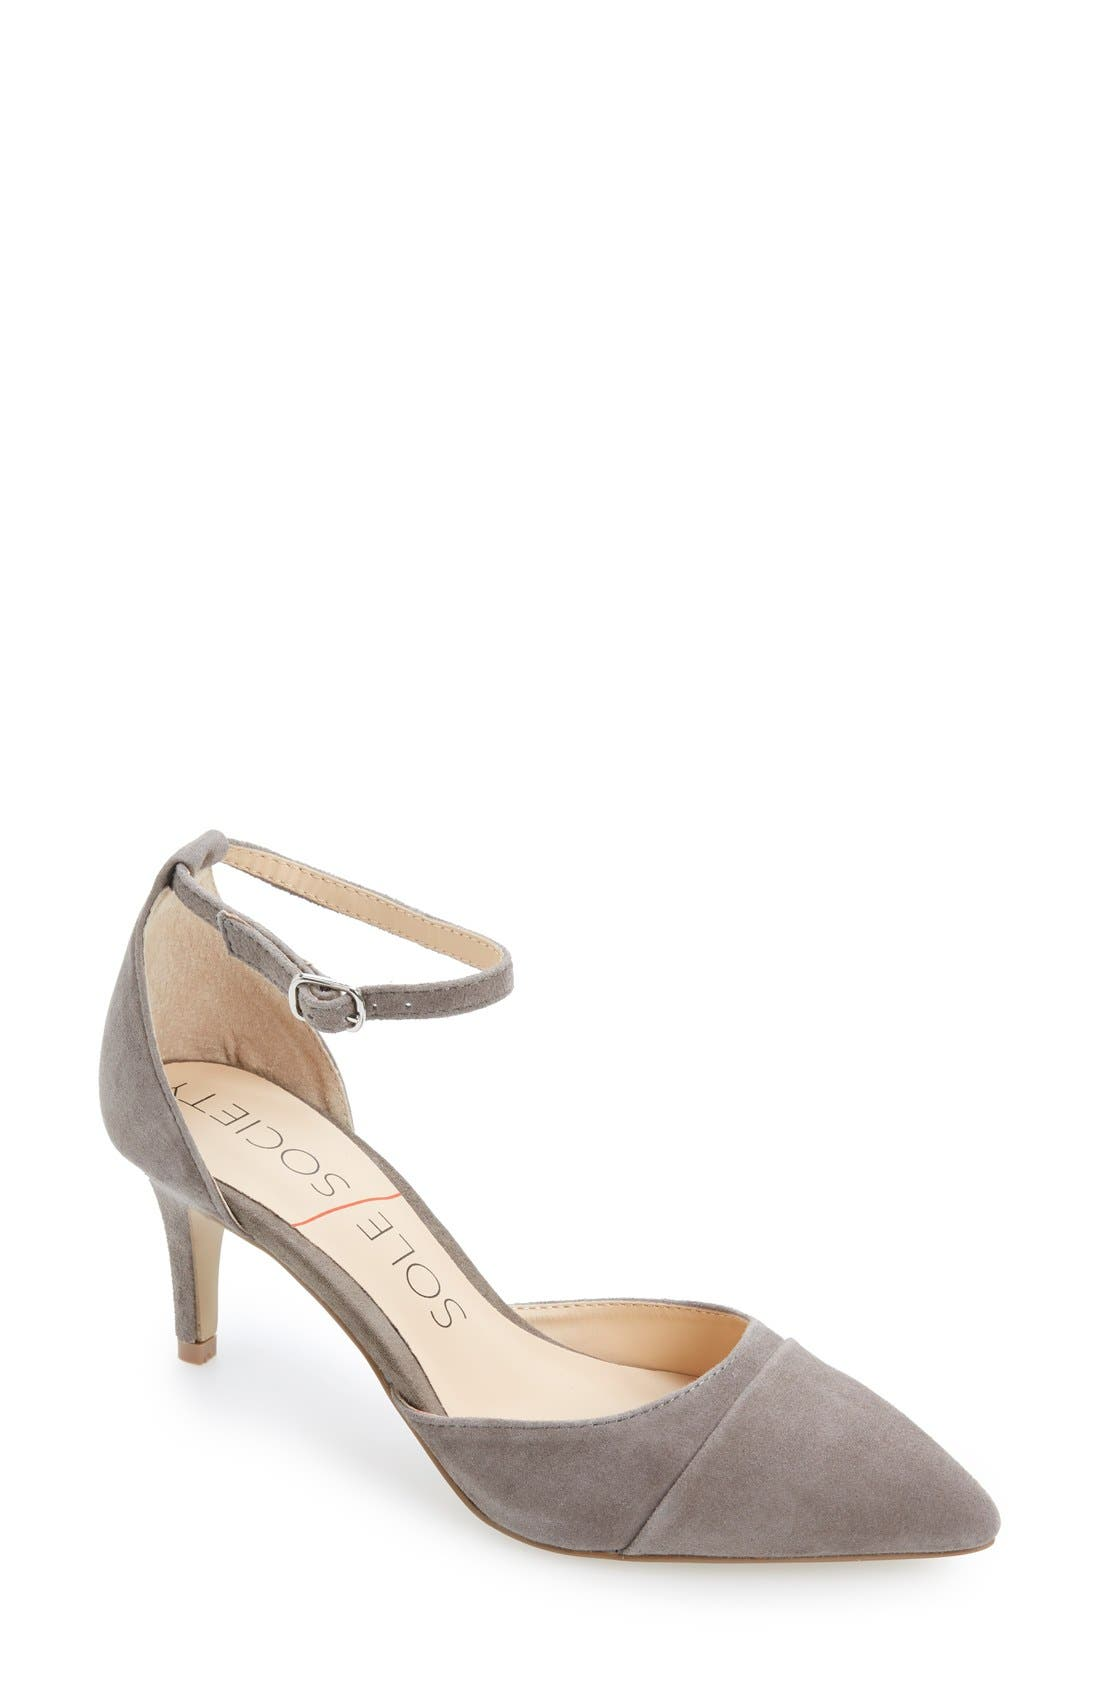 Alternate Image 1 Selected - Sole Society 'Alix' Pump (Women)